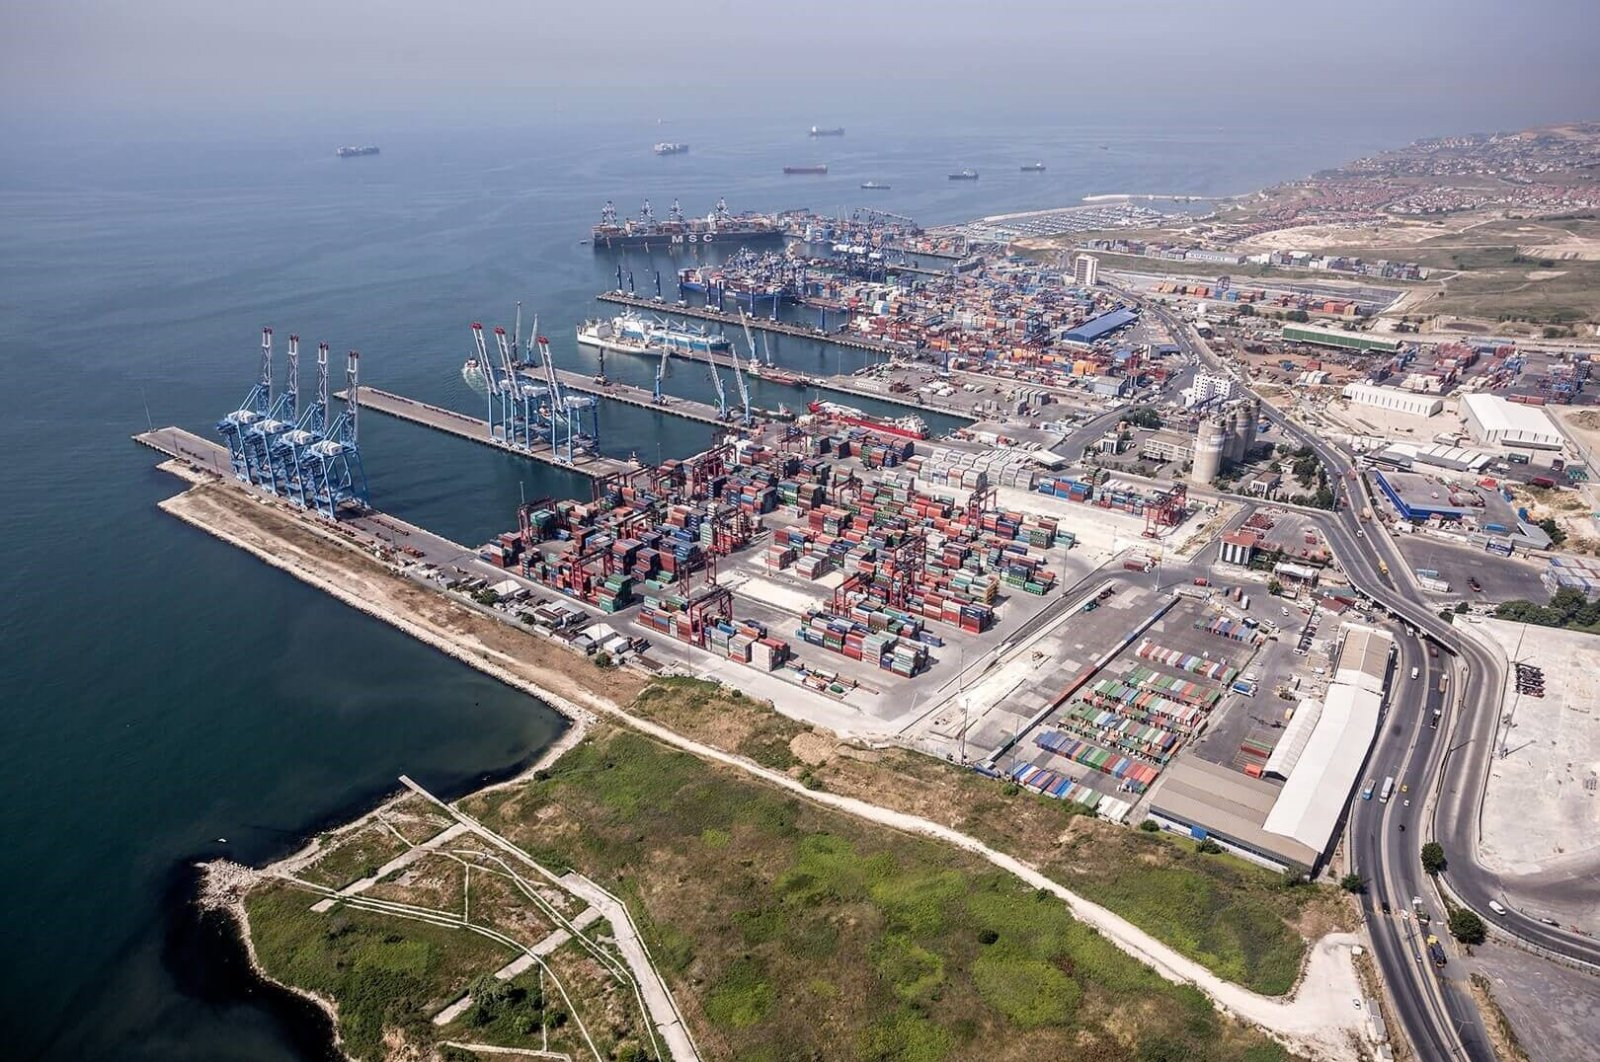 Containers and ships are seen at Kumport, one of Turkey's largest ports, Istanbul. (Photo courtesy of Kumport)